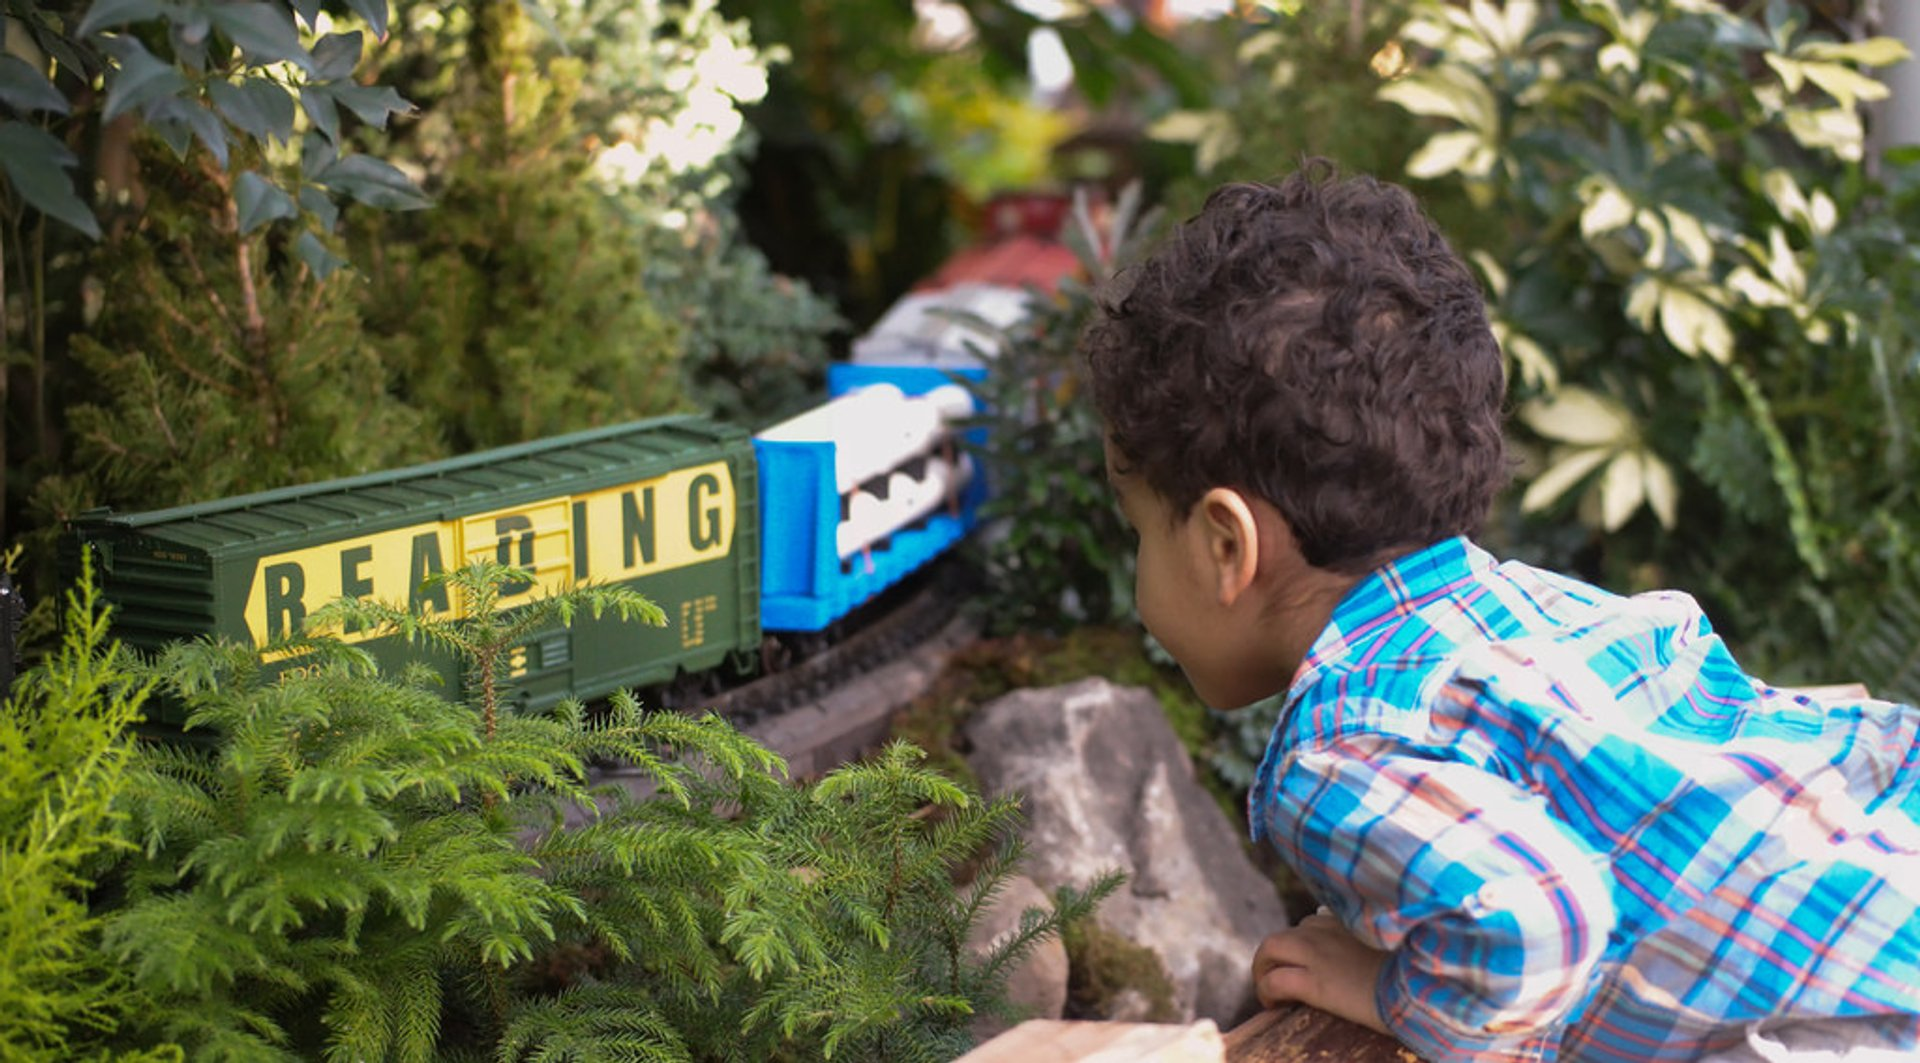 Best time for Holiday Train Show in New York 2020